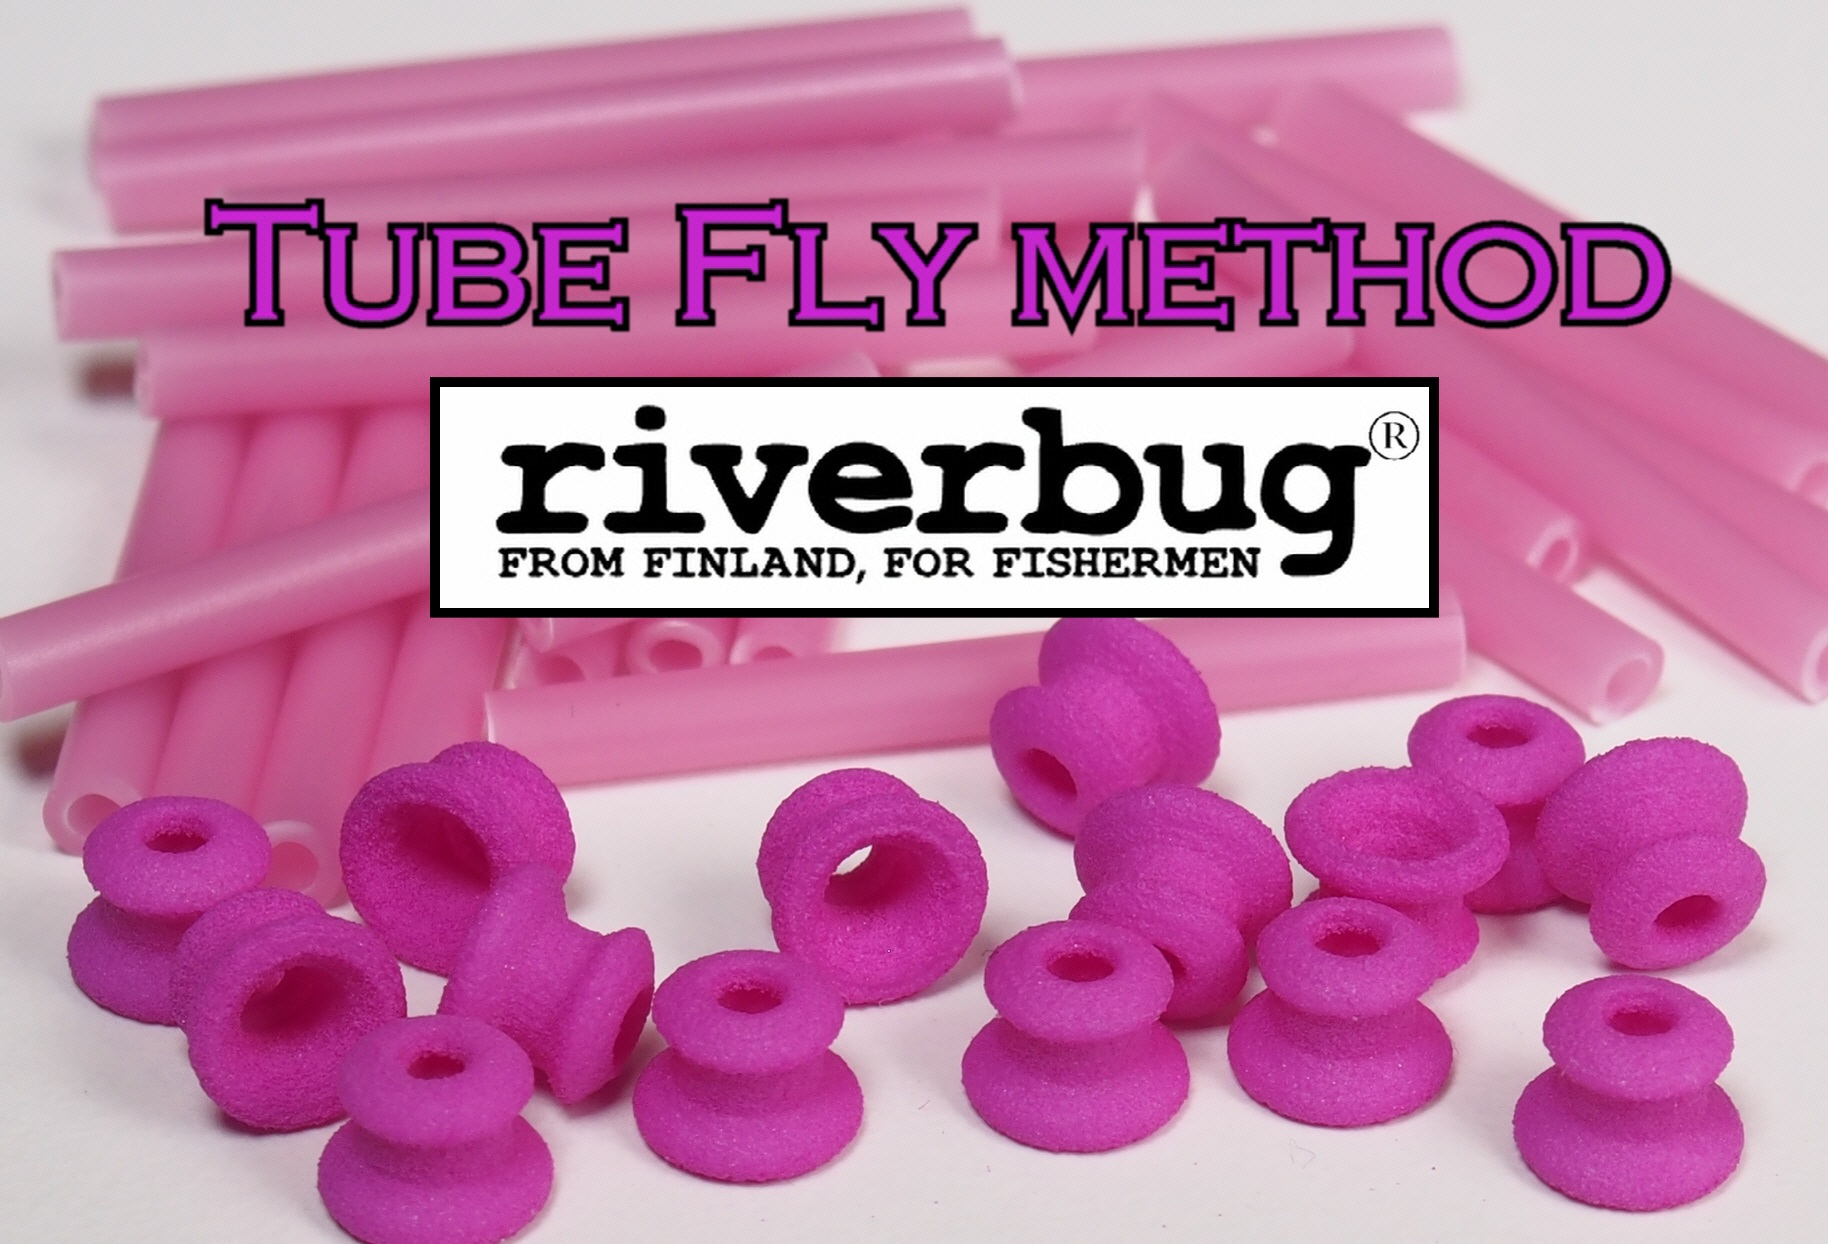 Tube Fly method by RiverBug - Version 2.0 - Putkiperhorunko